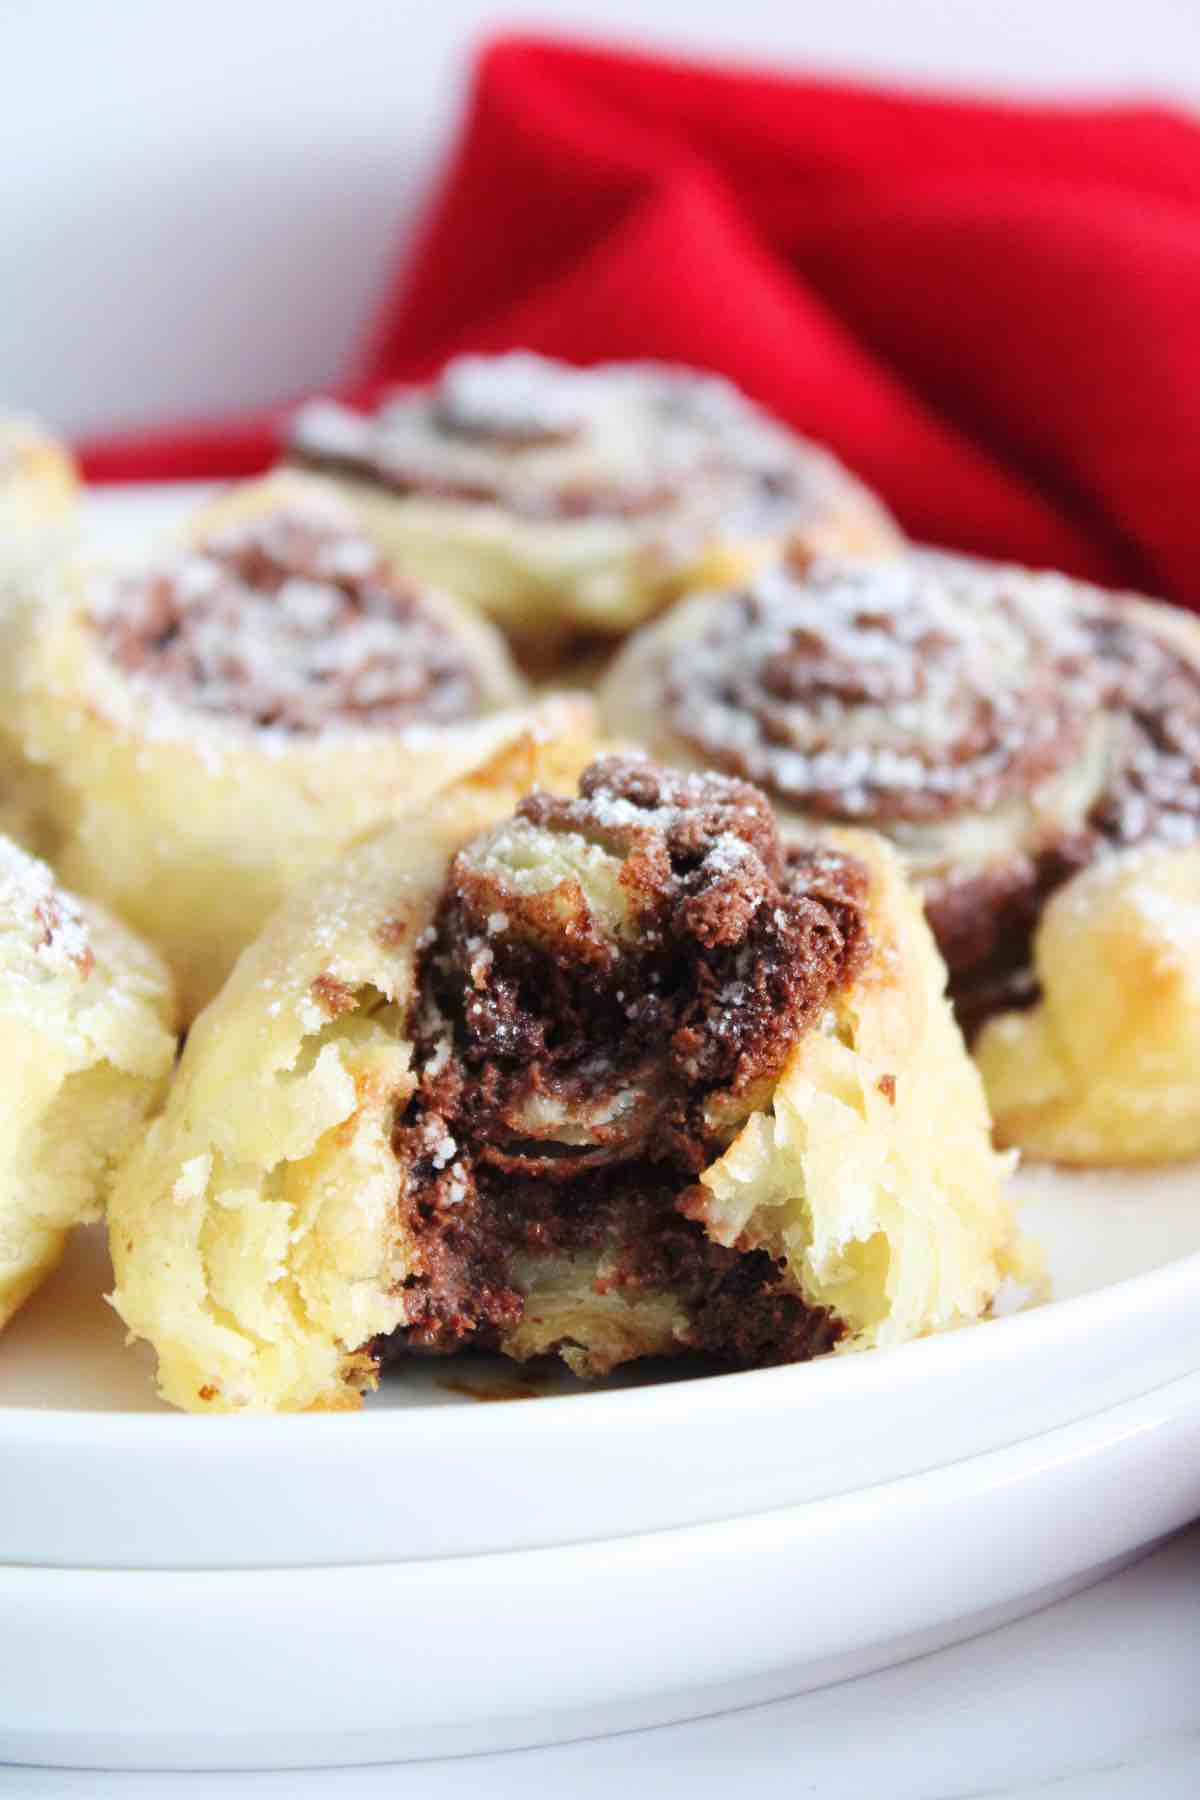 Serve these delicious nutella pastry swirls topped with powdered sugar.